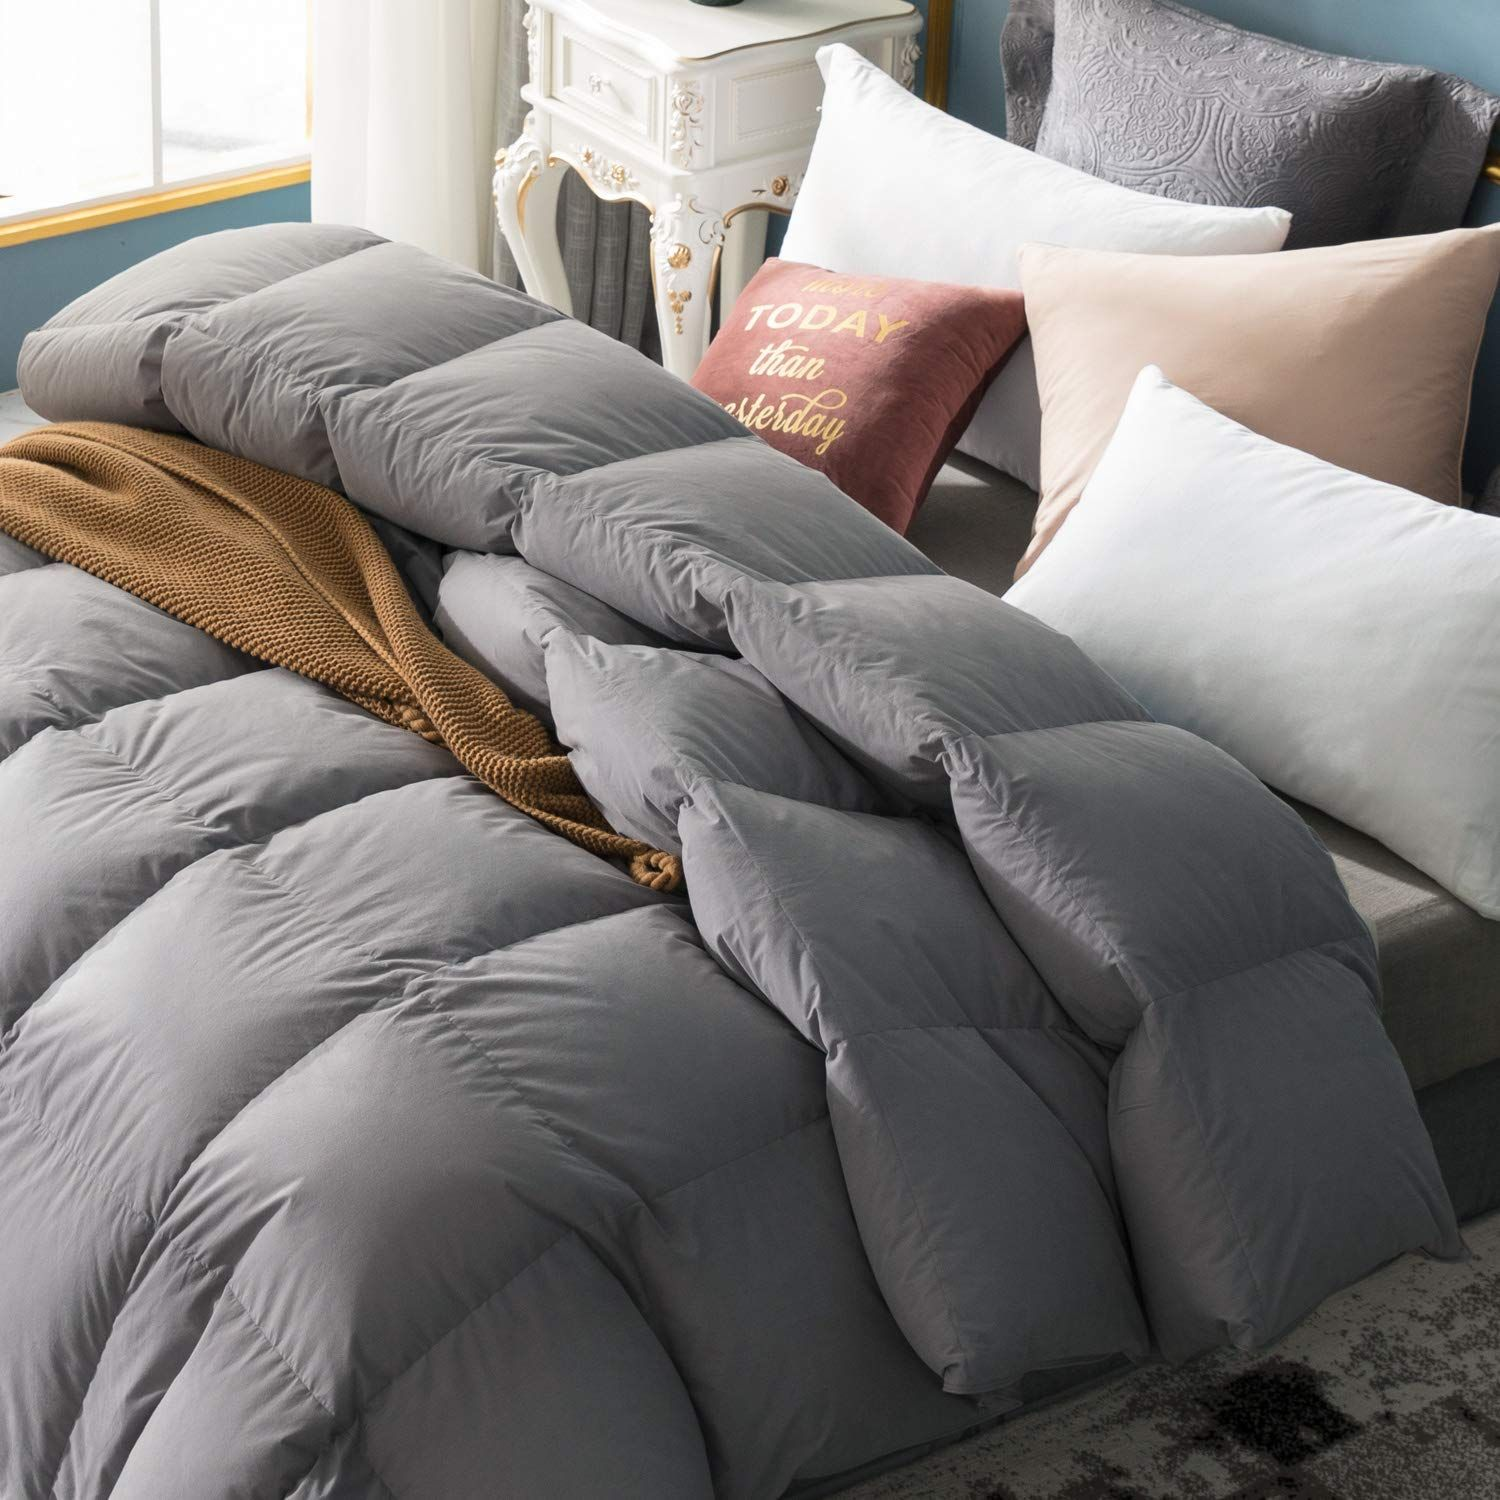 Globon Fusion White Goose Down Comforter King Size 60oz Fill